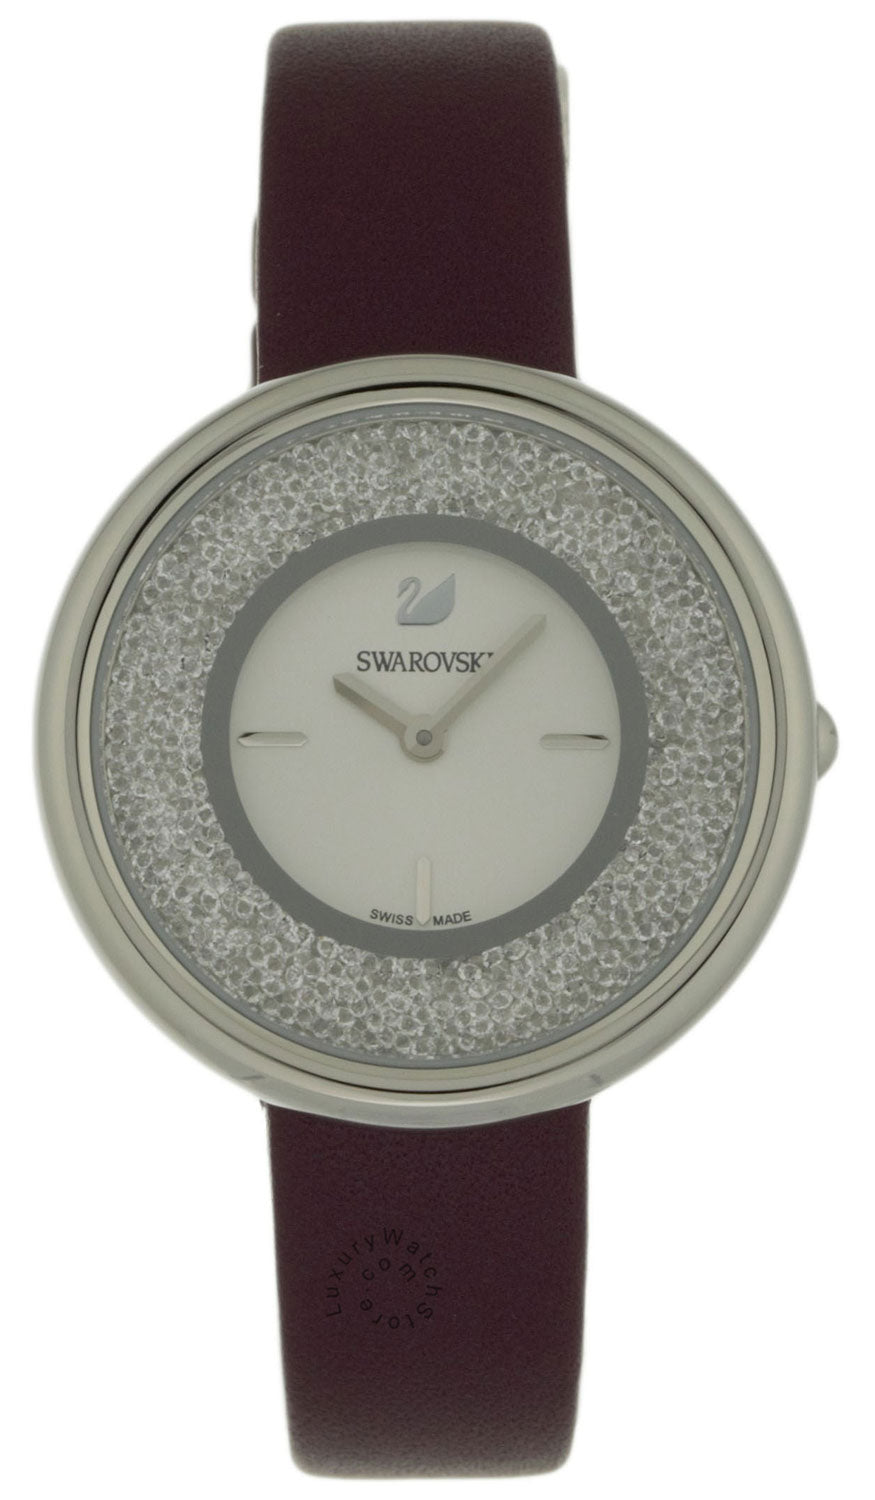 Swarovski Crystalline Pure 850 Crystals Burgundy Leather Watch 5295355